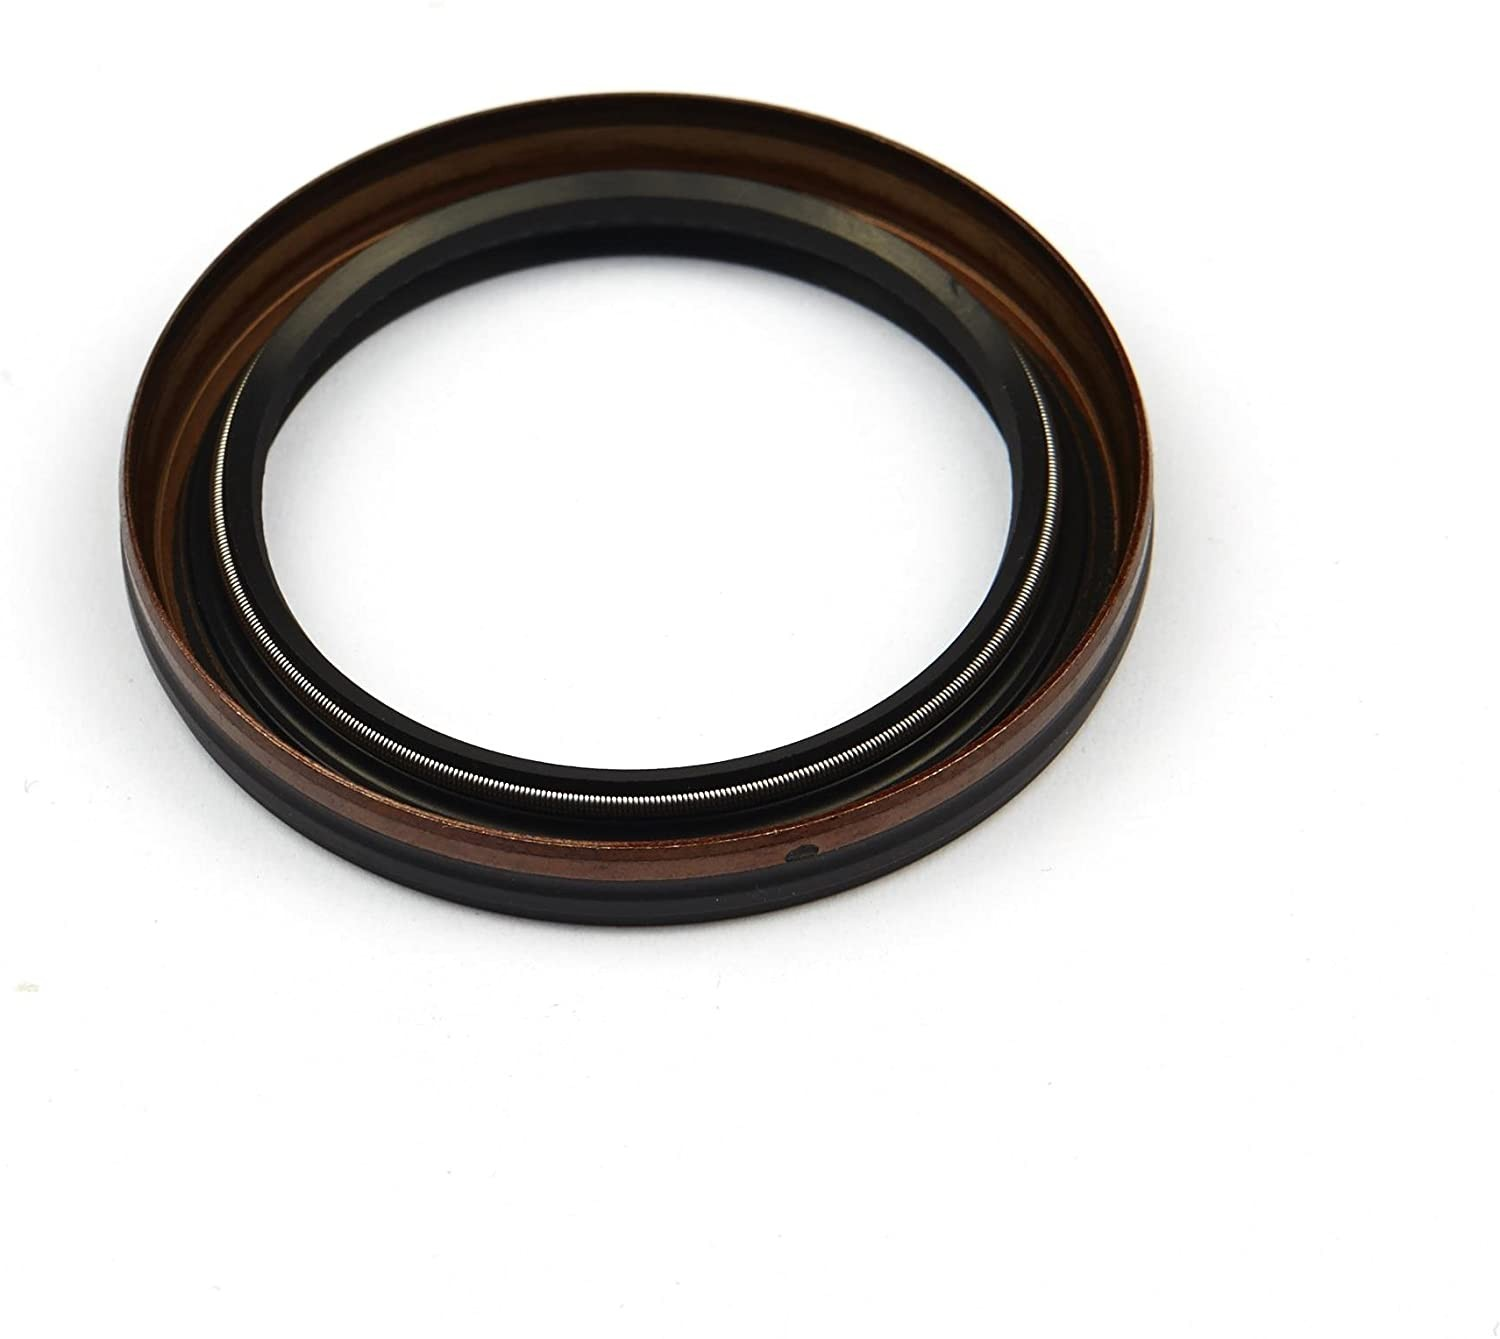 17.5 Hp Briggs and Stratton End Play Briggs & Stratton Oil Seal Replaces Of 17.5 Hp Briggs and Stratton End Play